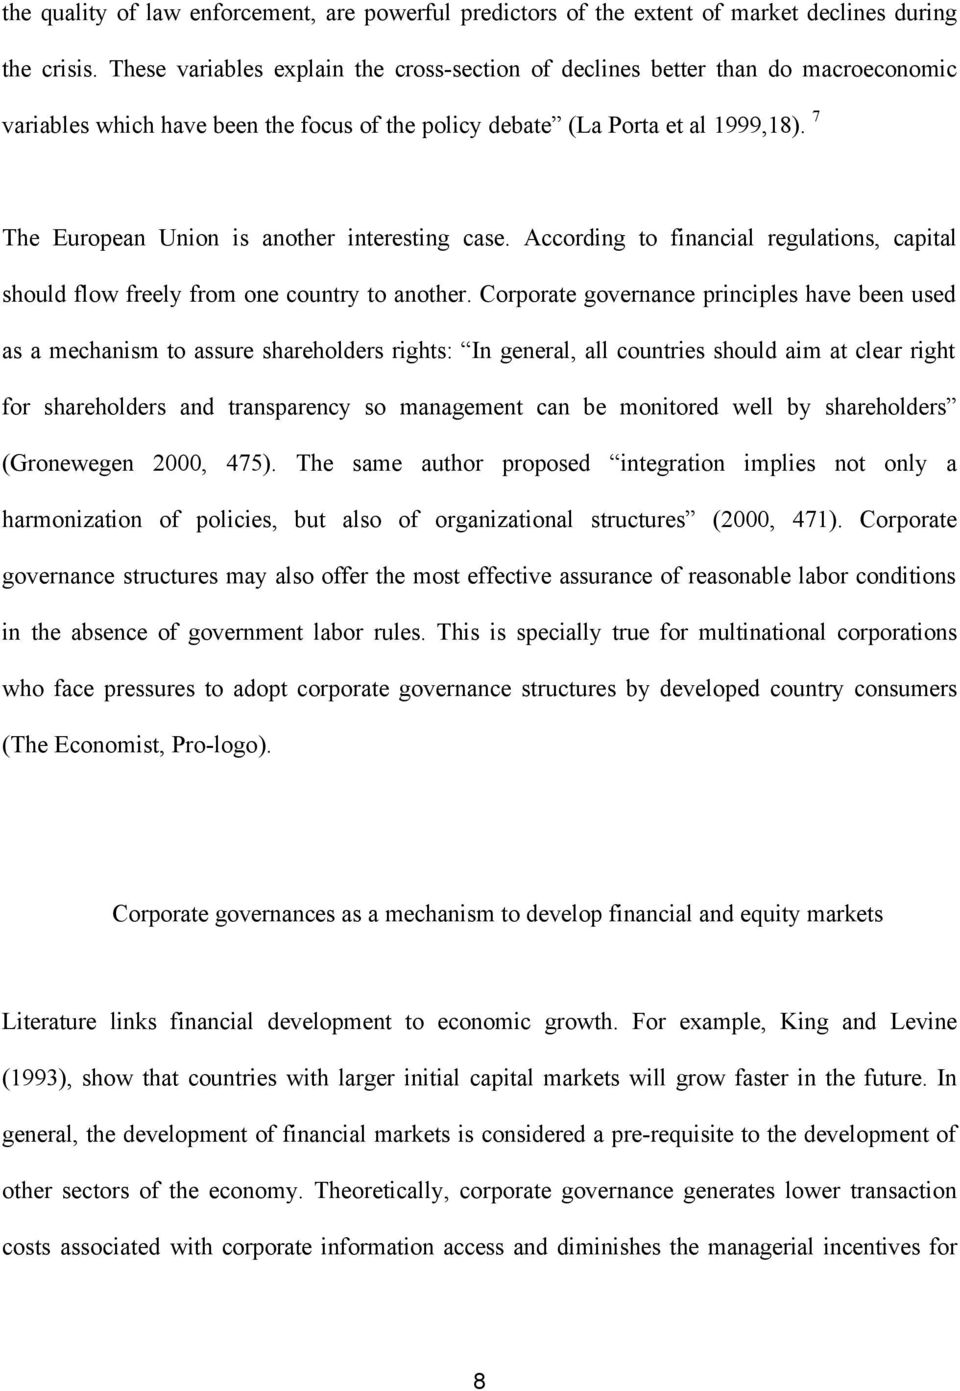 7 The European Union is another interesting case. According to financial regulations, capital should flow freely from one country to another.